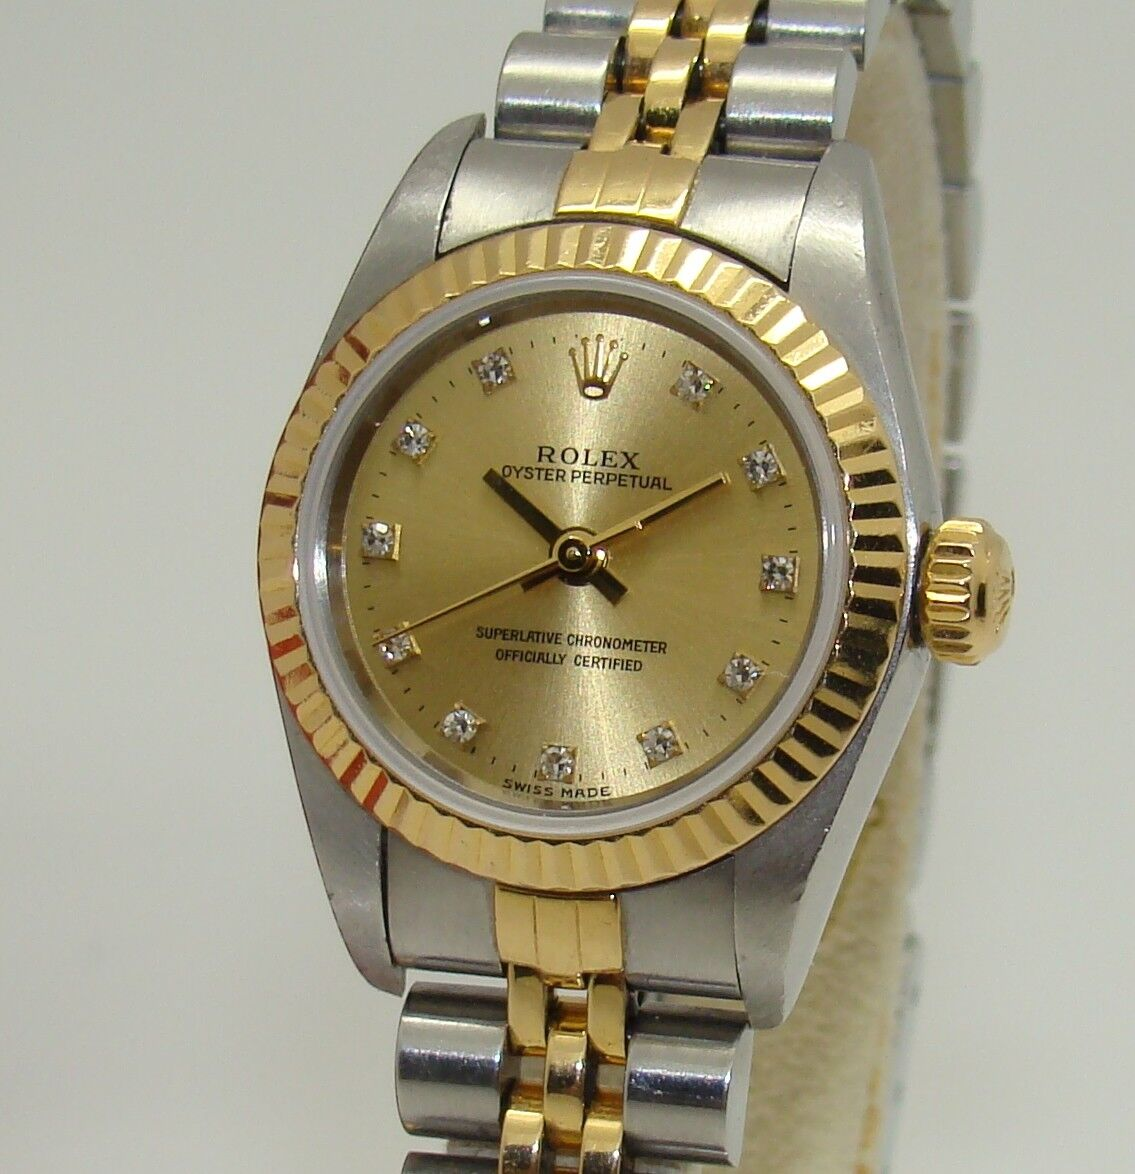 $1900.00 - ROLEX WOMENS OYSTER PERPETUAL SS & 18K CHAMPAGNE DIAMOND DIAL WATCH 67193